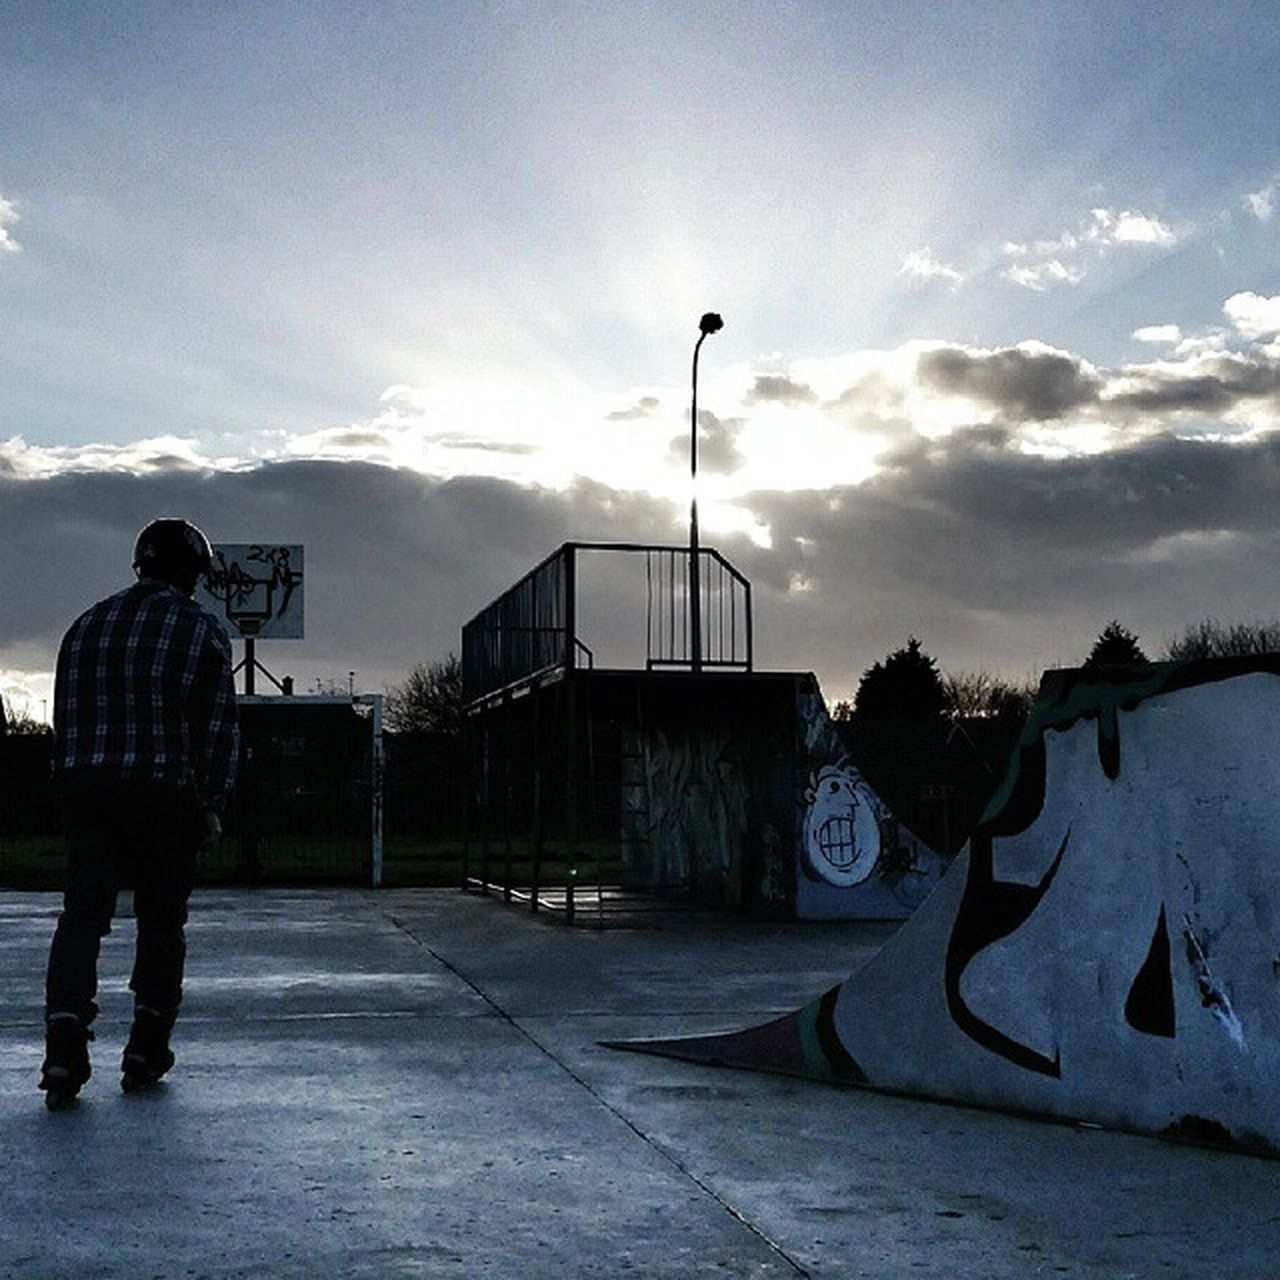 sky, real people, cloud - sky, graffiti, standing, outdoors, rear view, one person, men, built structure, road, day, architecture, full length, skateboard park, people